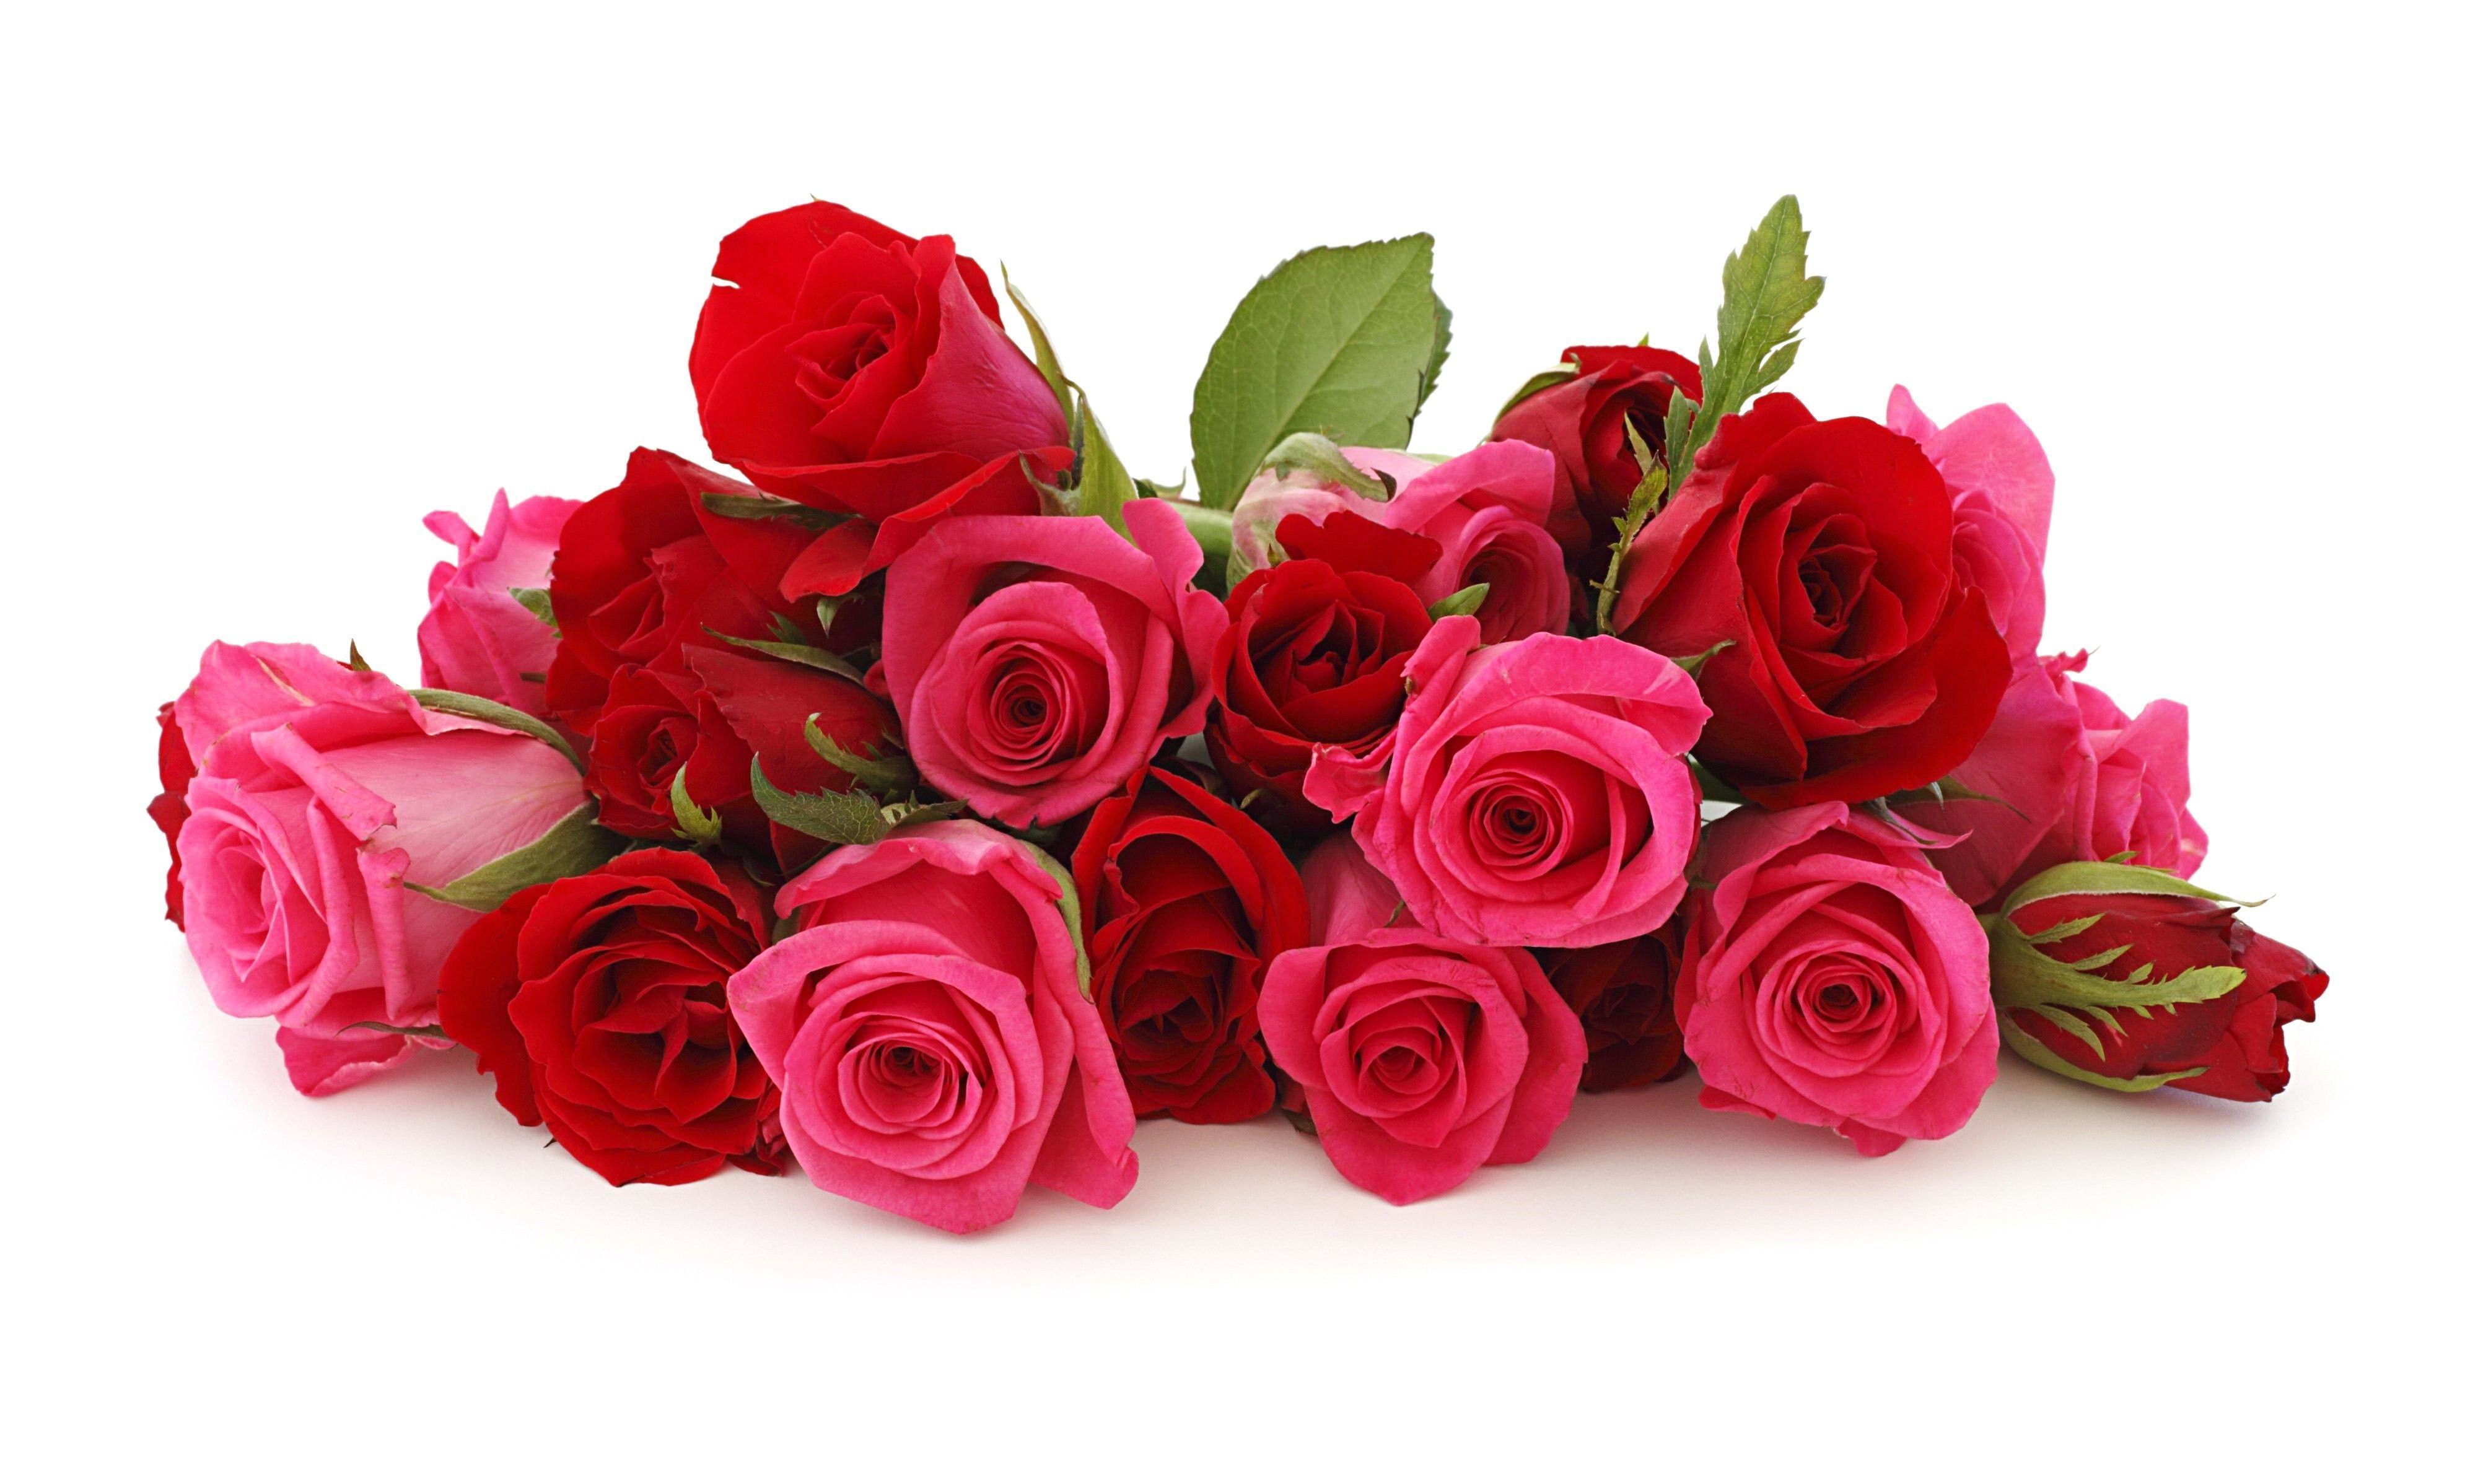 Bouquet Of Roses Png Hd Transparent Bouquet Of Roses Hd Png Images